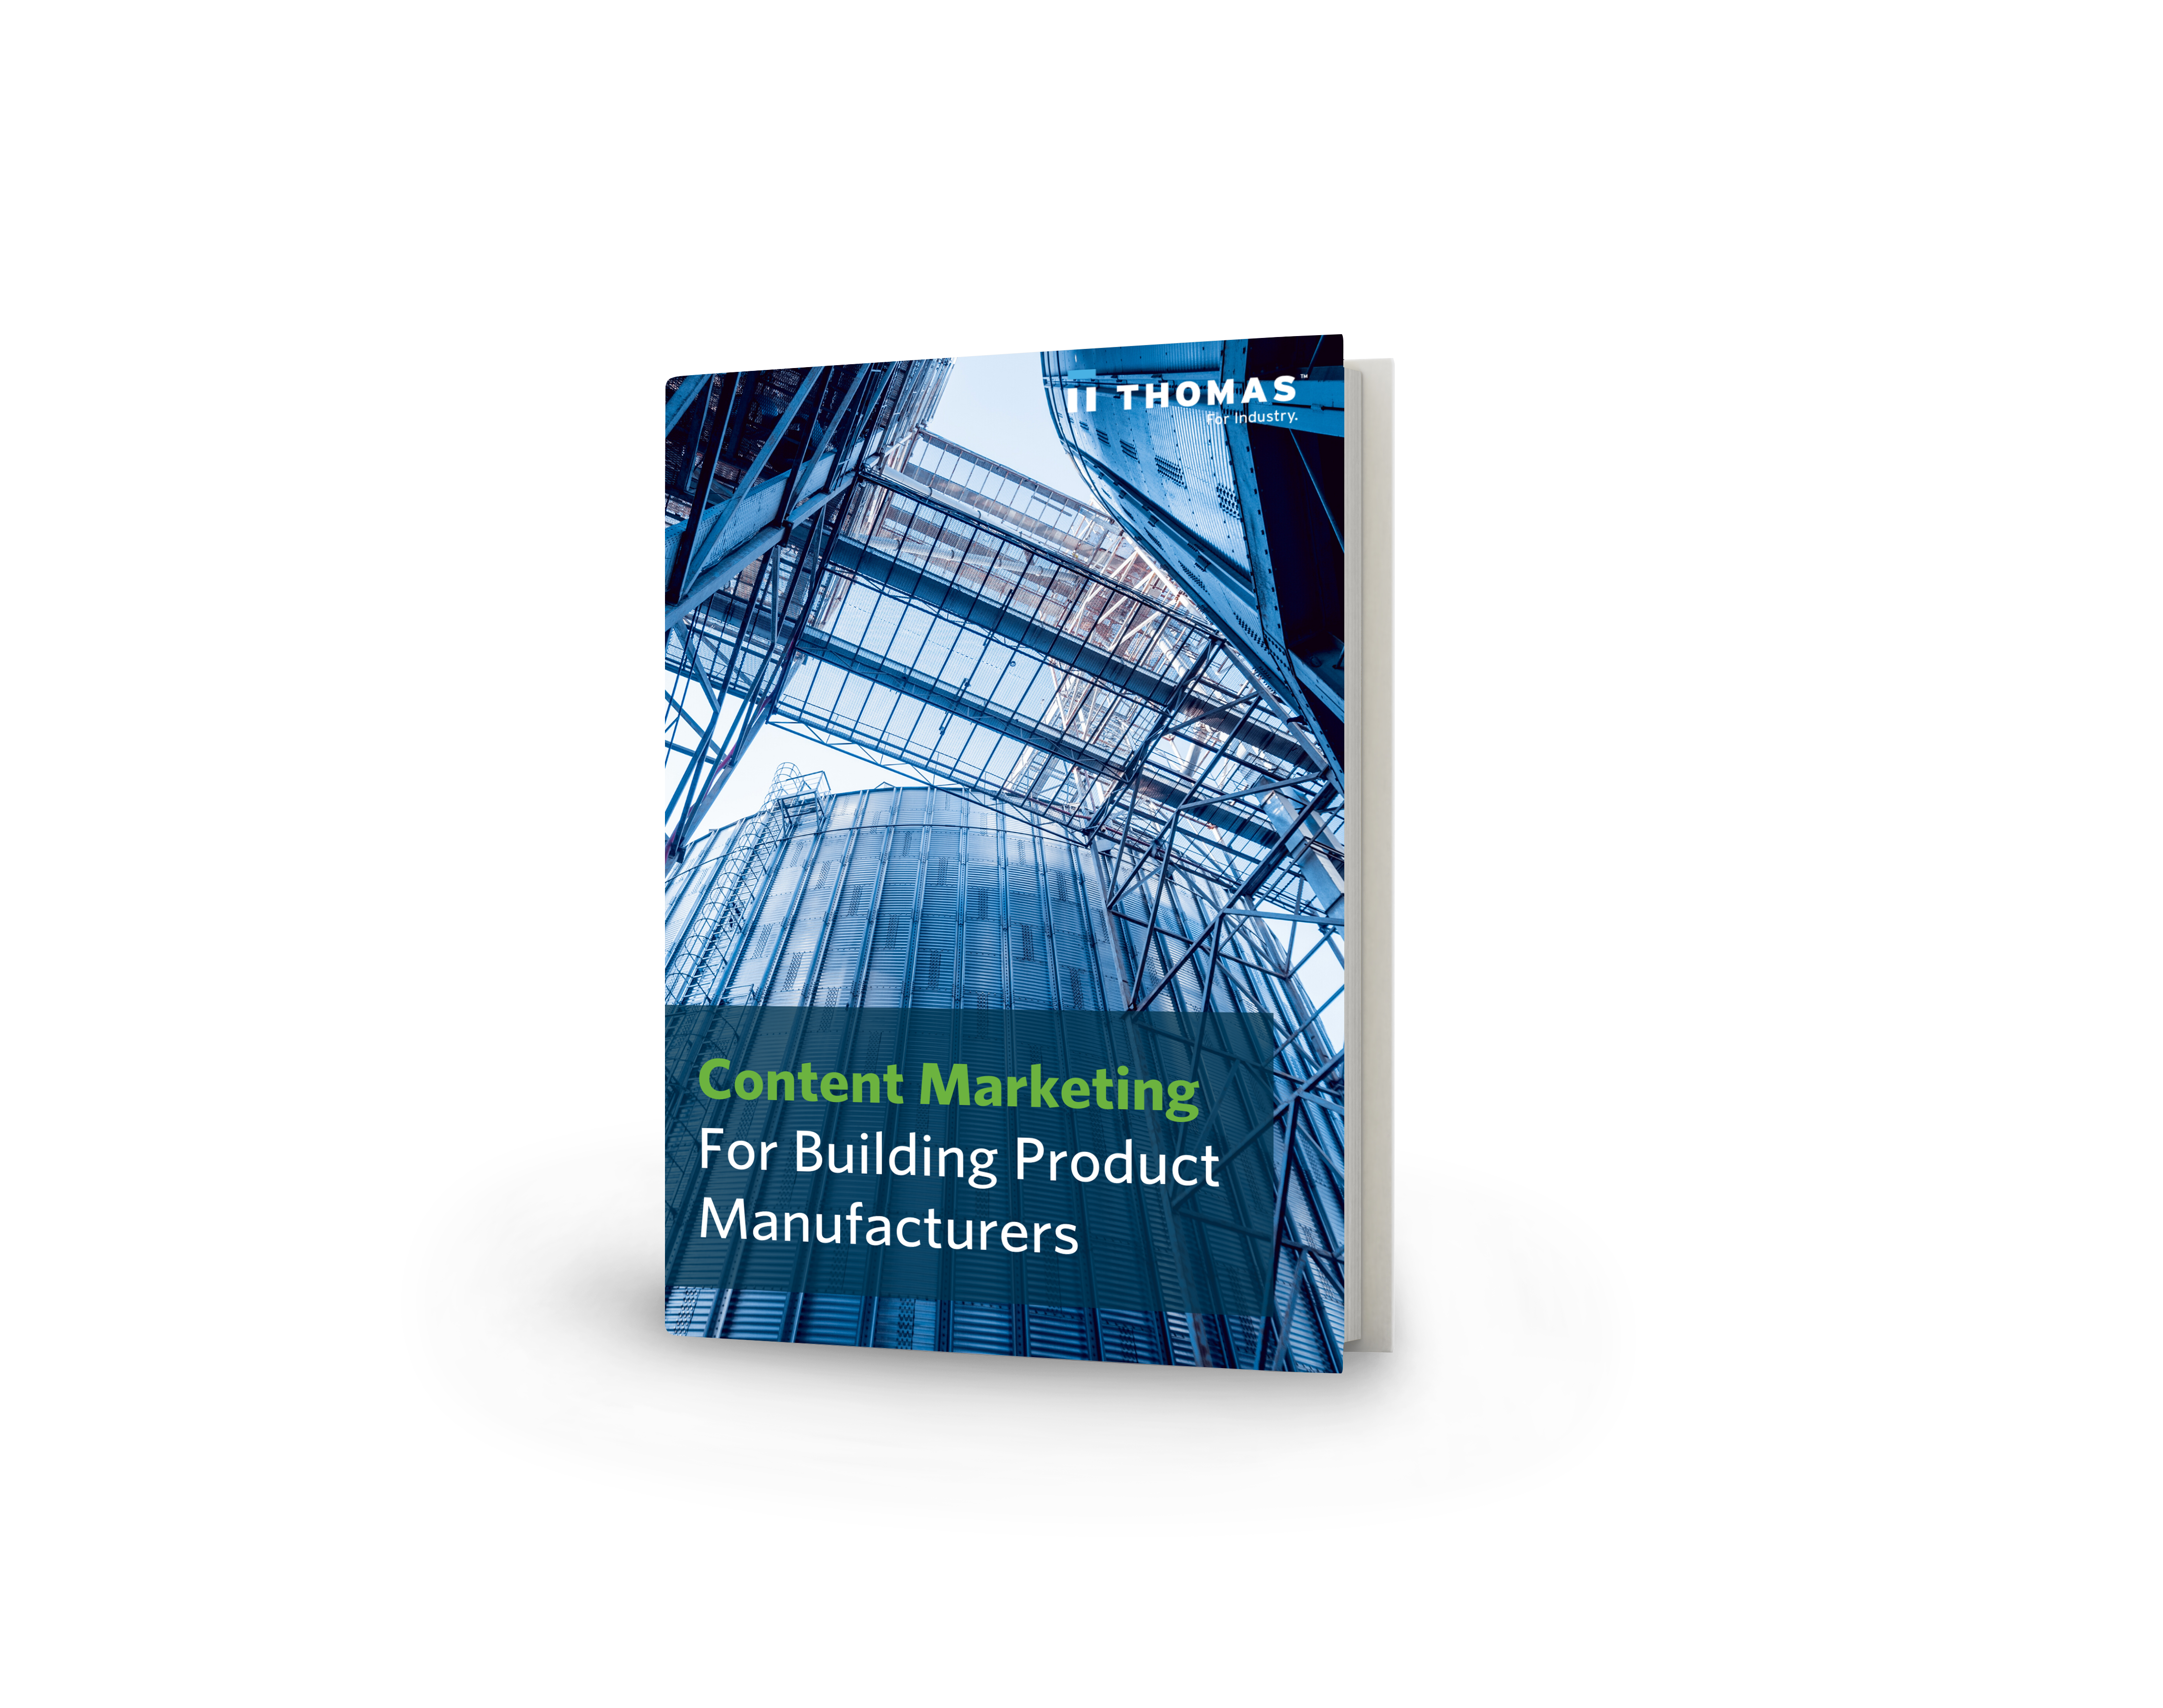 Content Marketing For Building Product Manufacturers